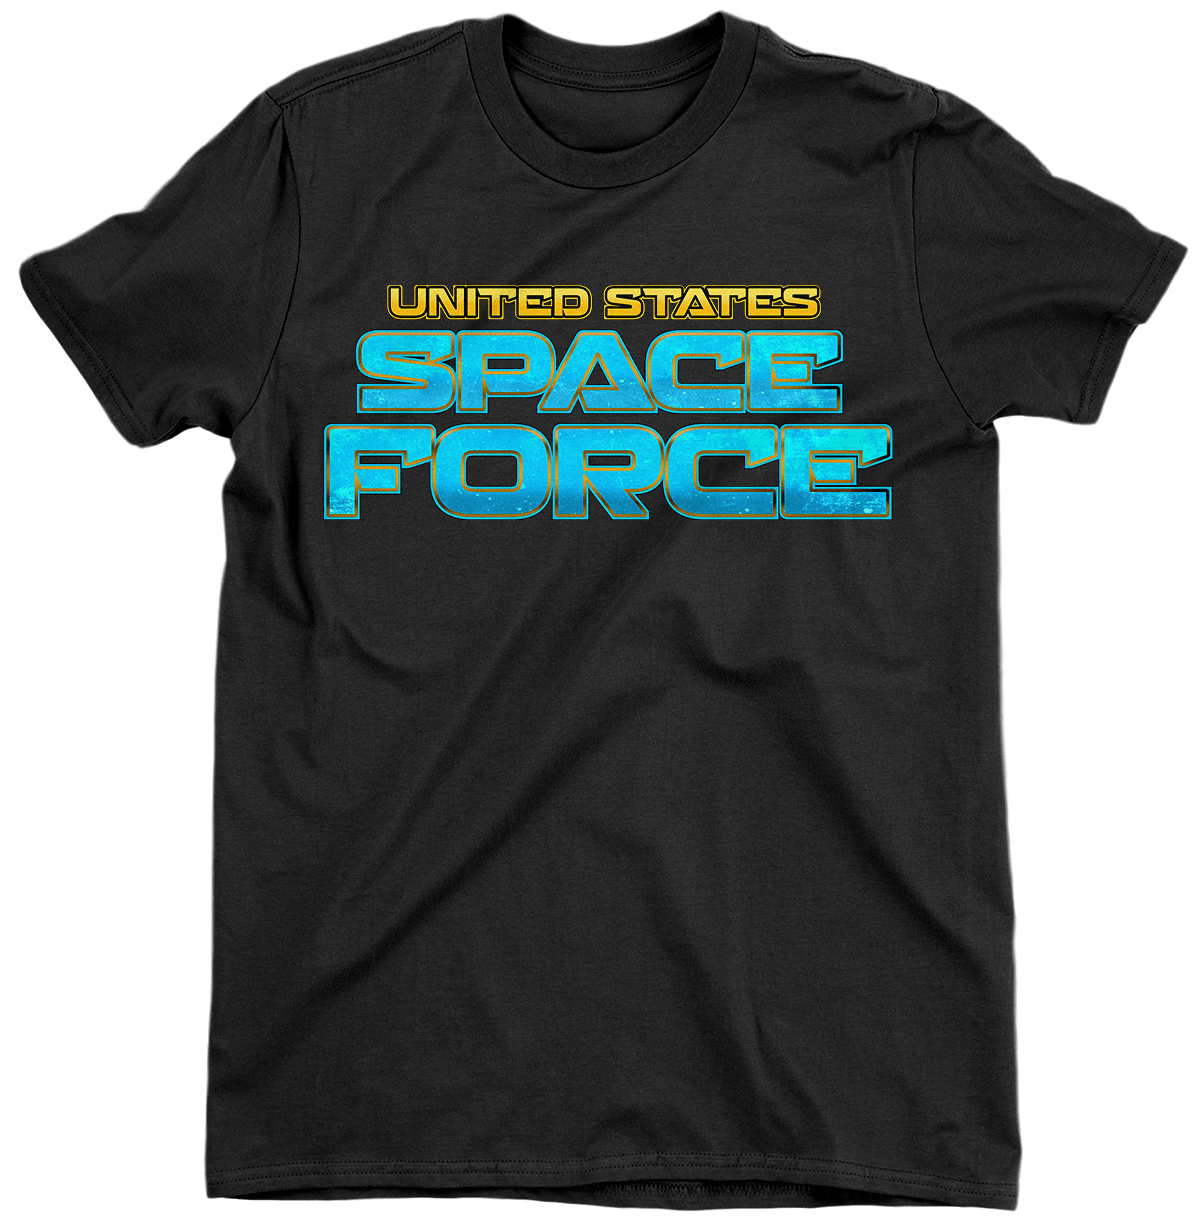 United States Space Force (Front and Back Print)